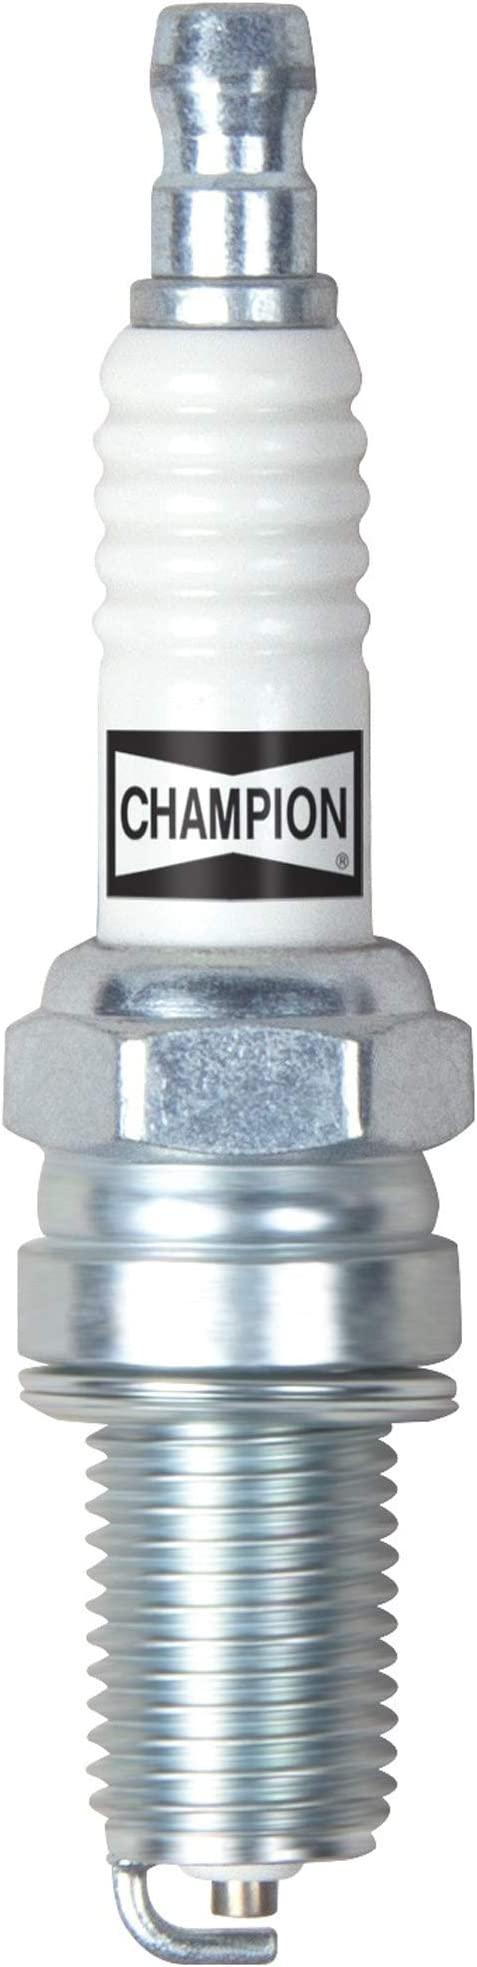 Boxed Champ Unspecified Champion RA8HC//T04 810 Spark Plug Ra8Hc Ea